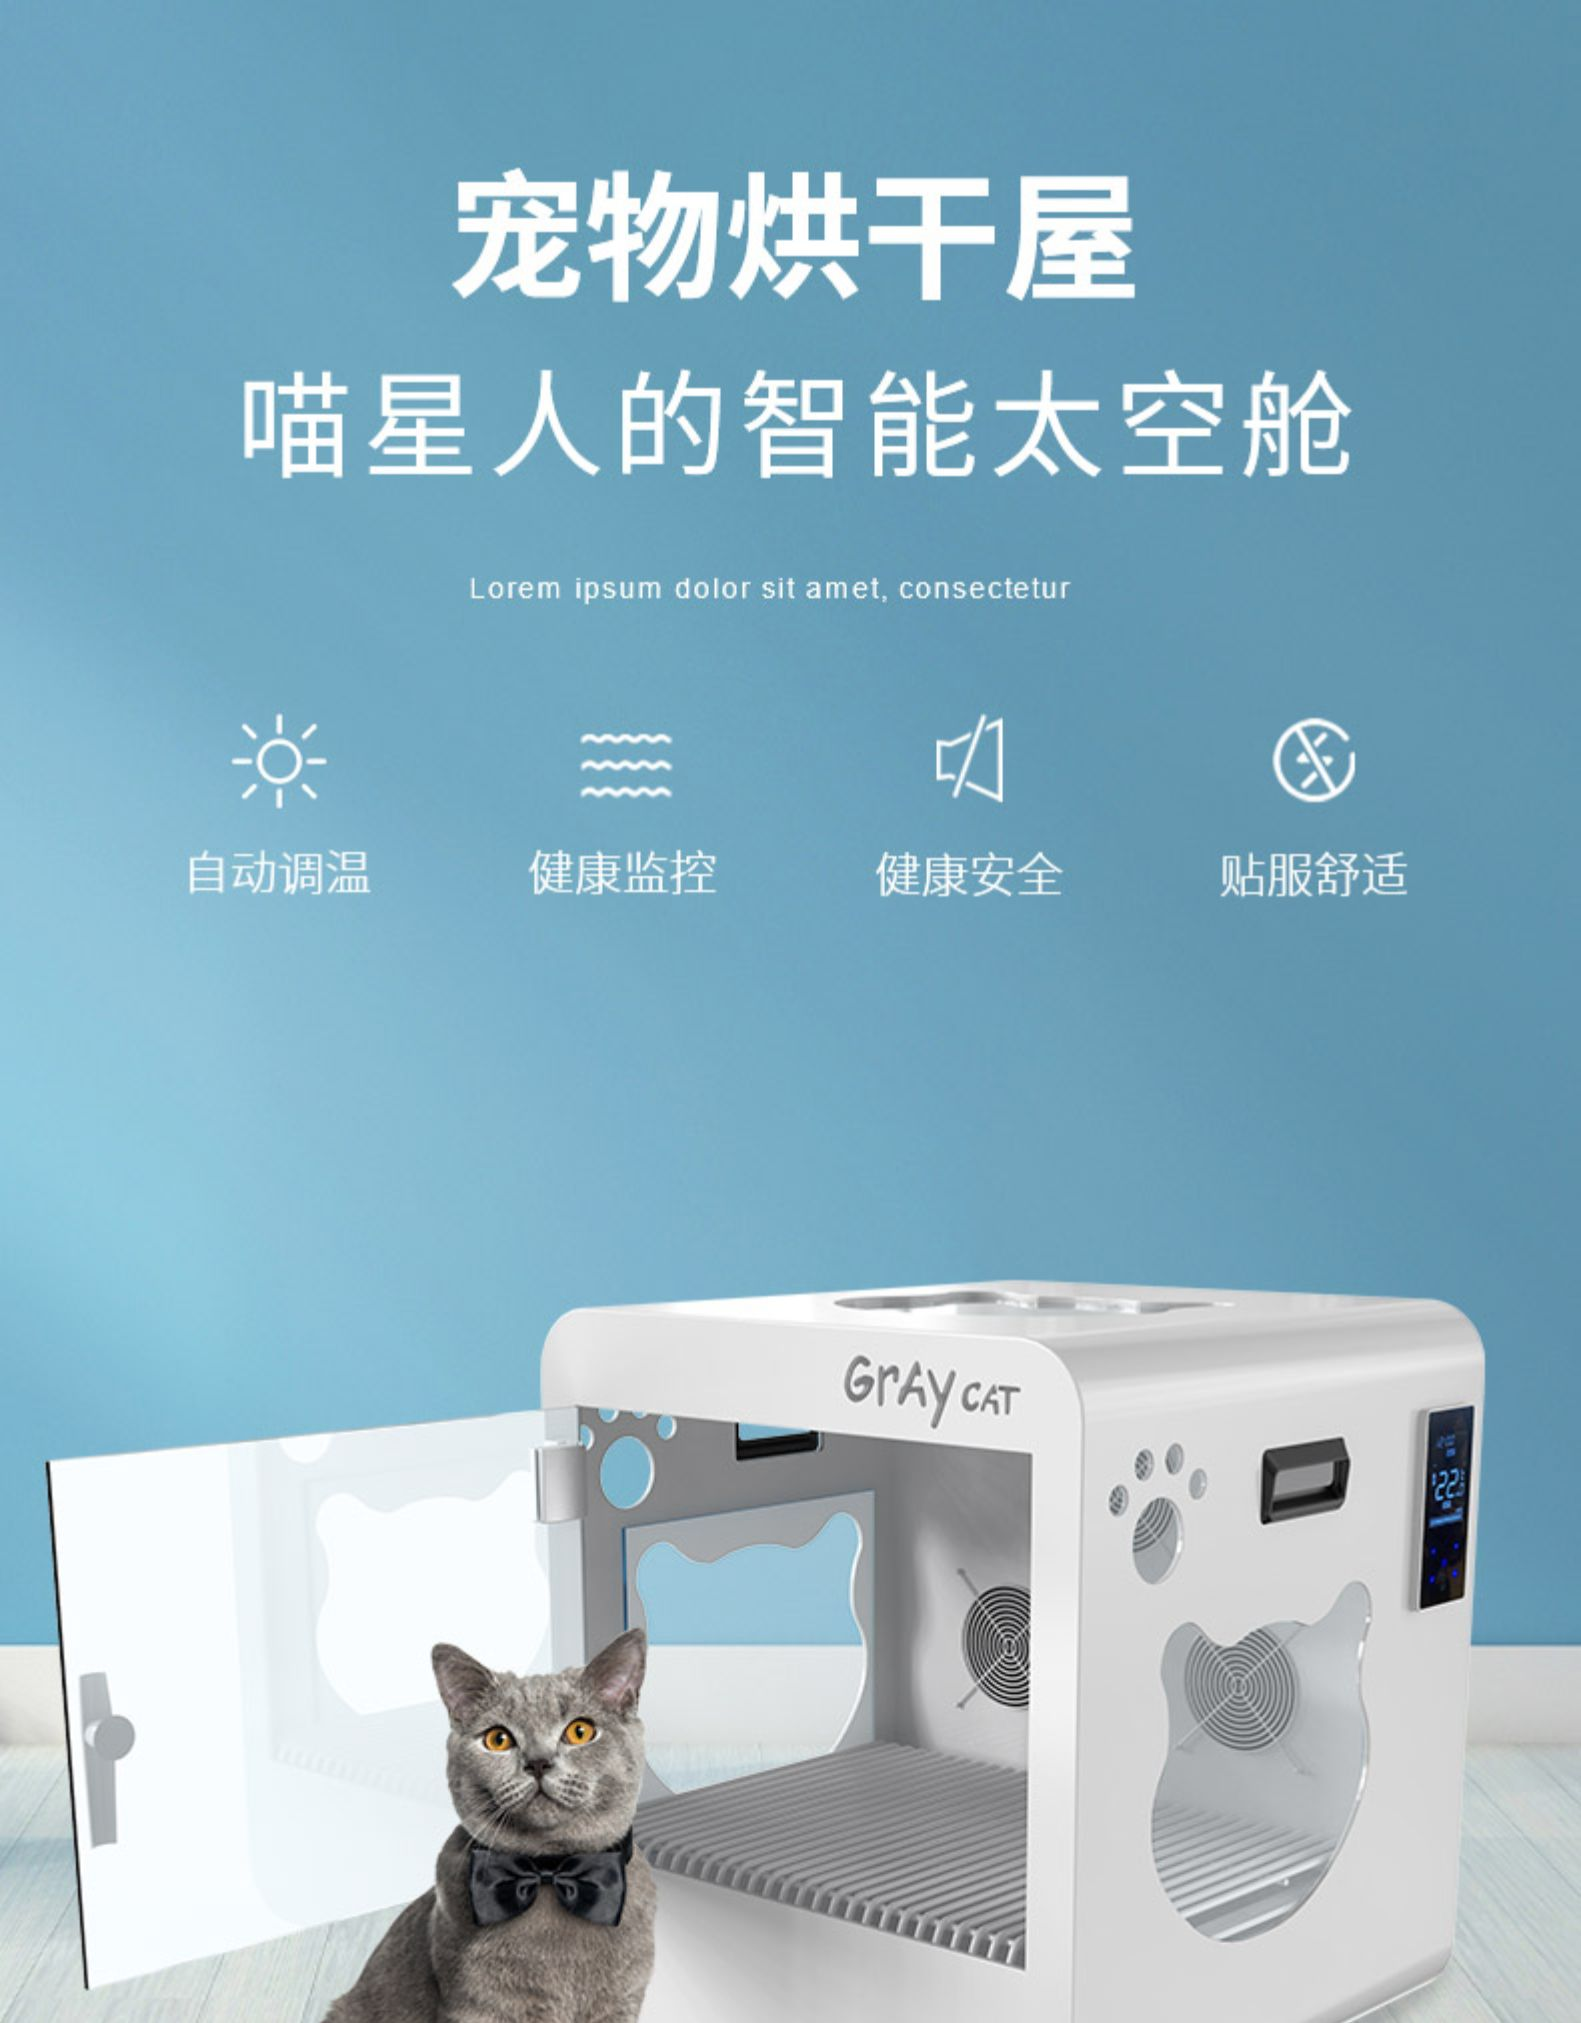 Automatic Pet Hair Dryer Cabin Small Pet Drying Box House Ultra-mute Grooming Water Blowing Machine Dog Cat Care Dryer Device